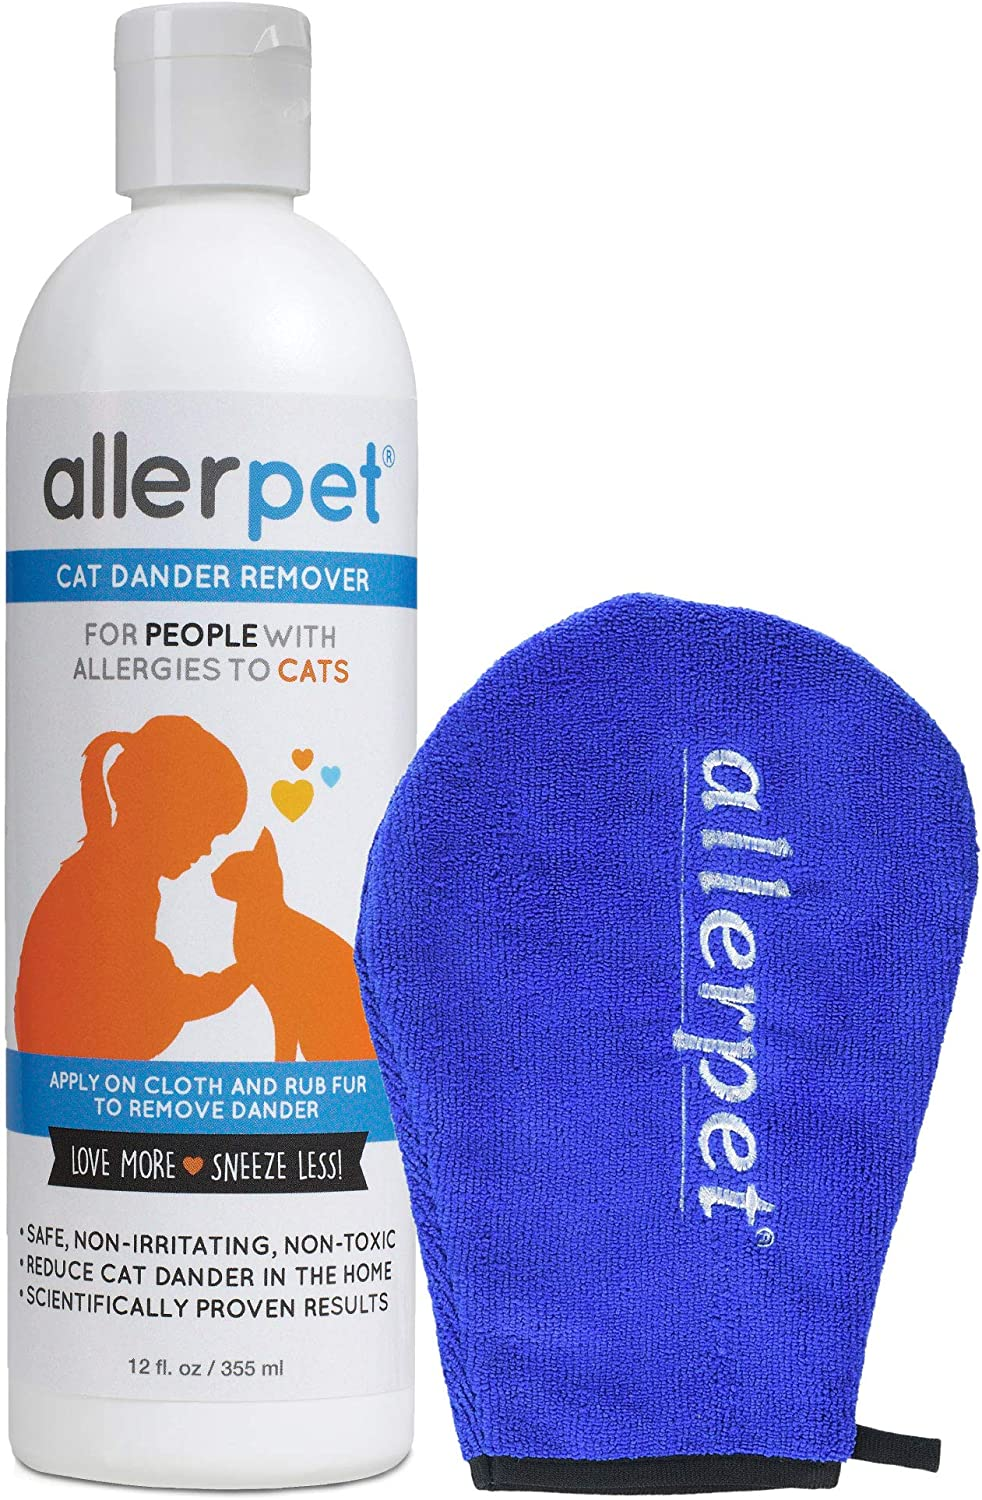 Allerpet Cat Dander Remover with Bonus Solution Application Mitt - 100% Non Toxic Pet Allergen Reducer - Scientifically Proven for Effective Cat Allergy Relief - Proudly USA Made (12oz) 8162BRUvfnfL